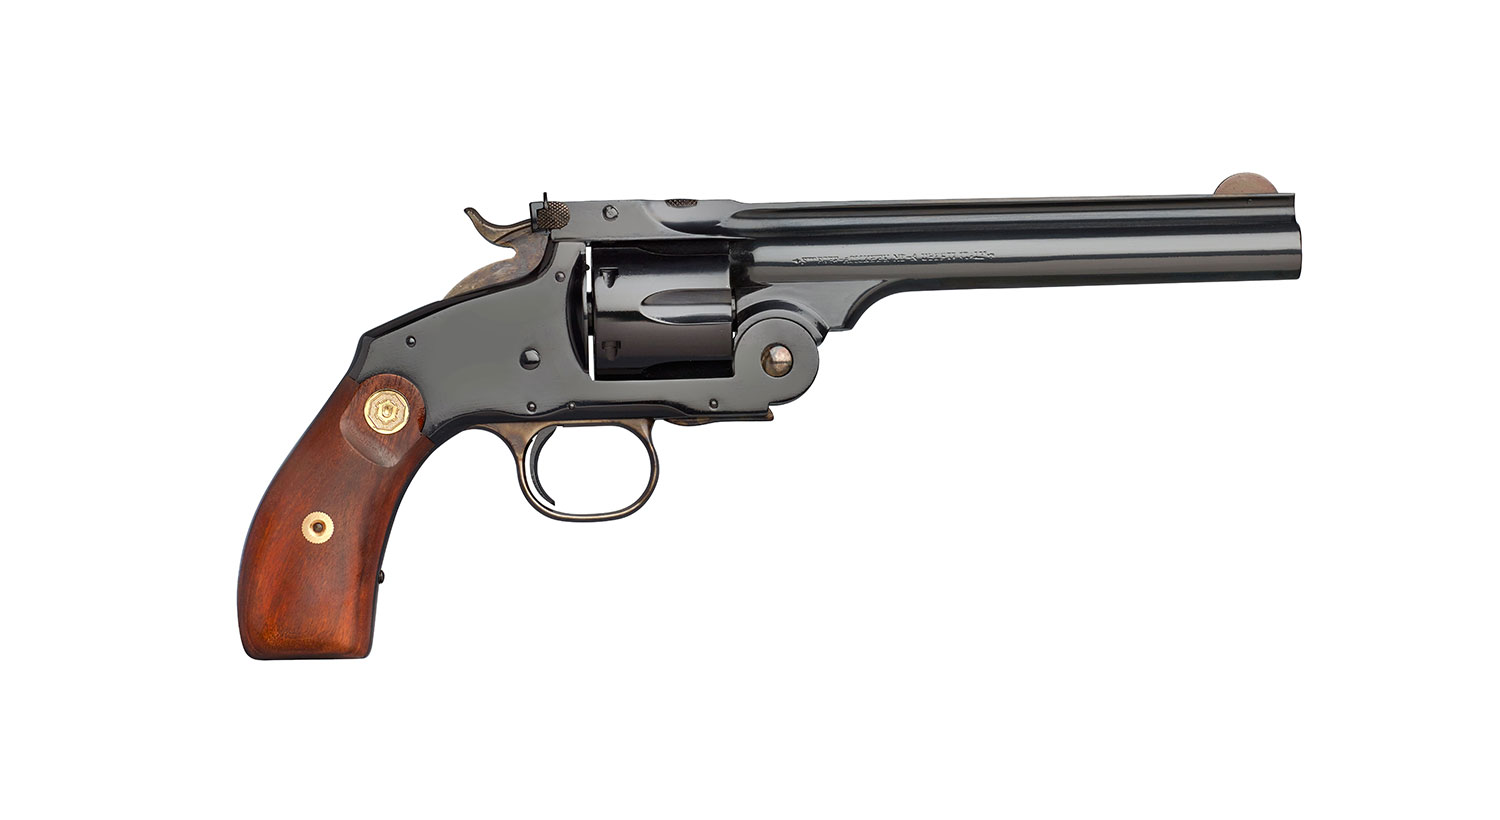 Smith And Wesson Mod 1 5 Diagram Electrical Wiring Of 1911 Pistol Furthermore Kimber Exploded New Model N 3 Frontier Uberti Replicas Top Quality Firearms Rh Ubertireplicas Com 686 J Frame Parts